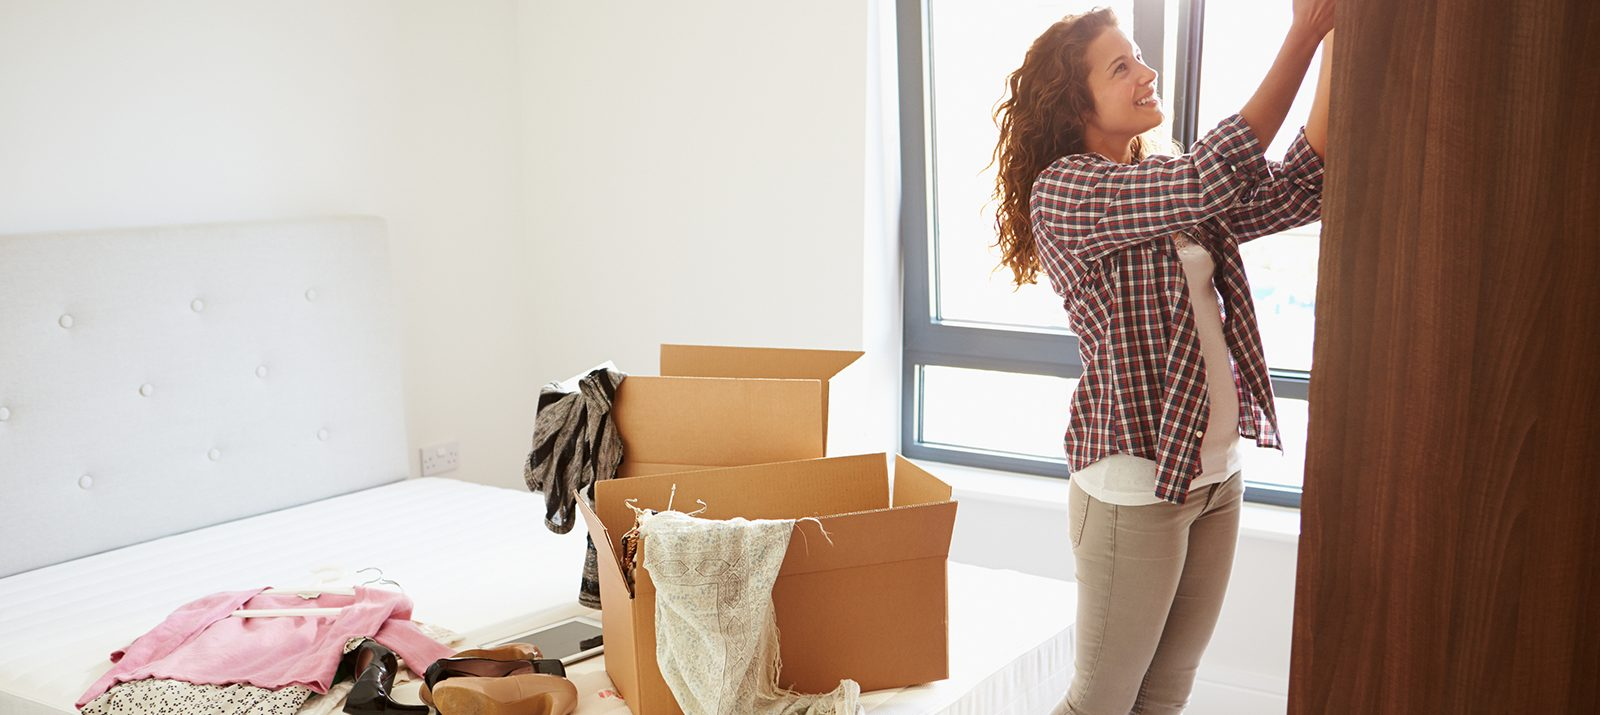 what to store and toss before moving into a new house: a woman packing clothes into boxes in a bedroom